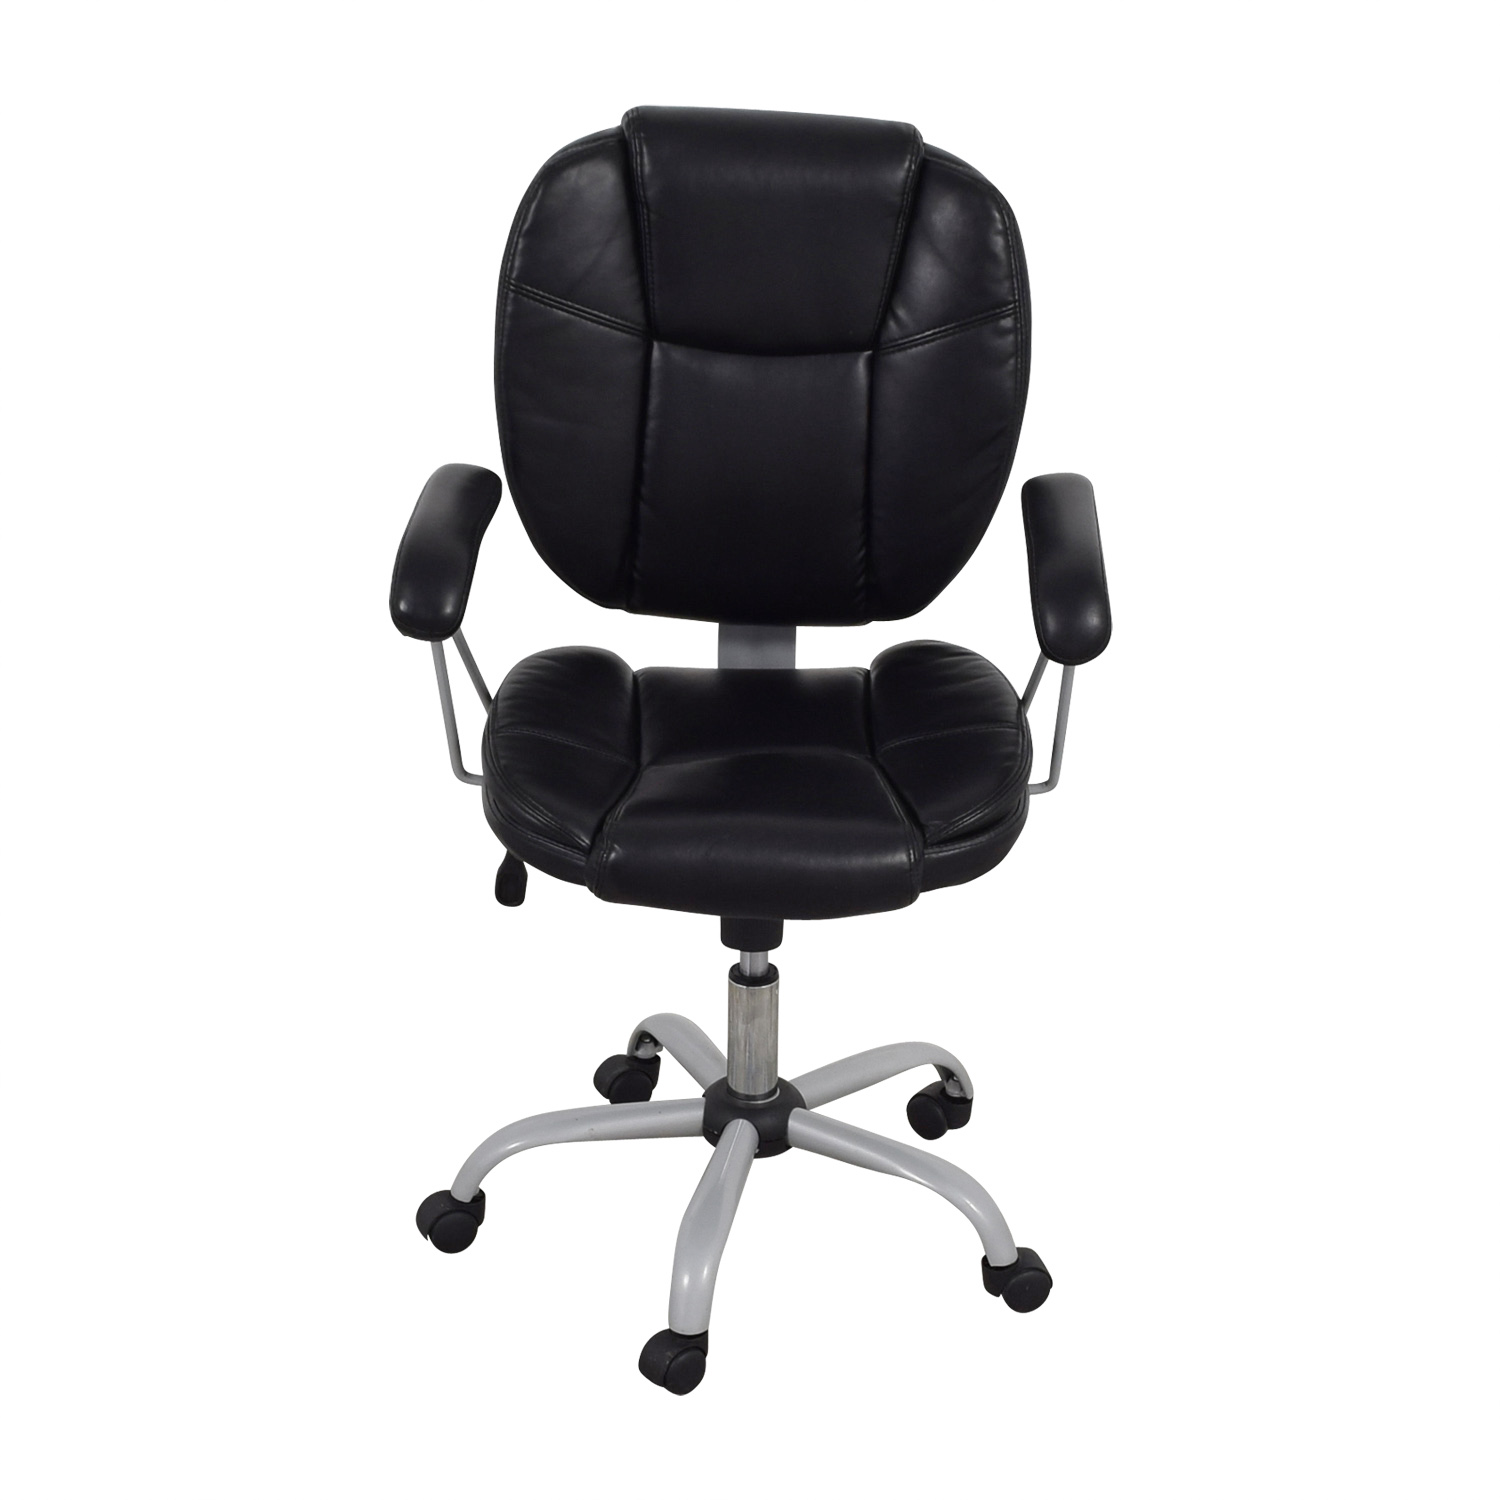 ... Black Leather Desk Chair / Chairs ...